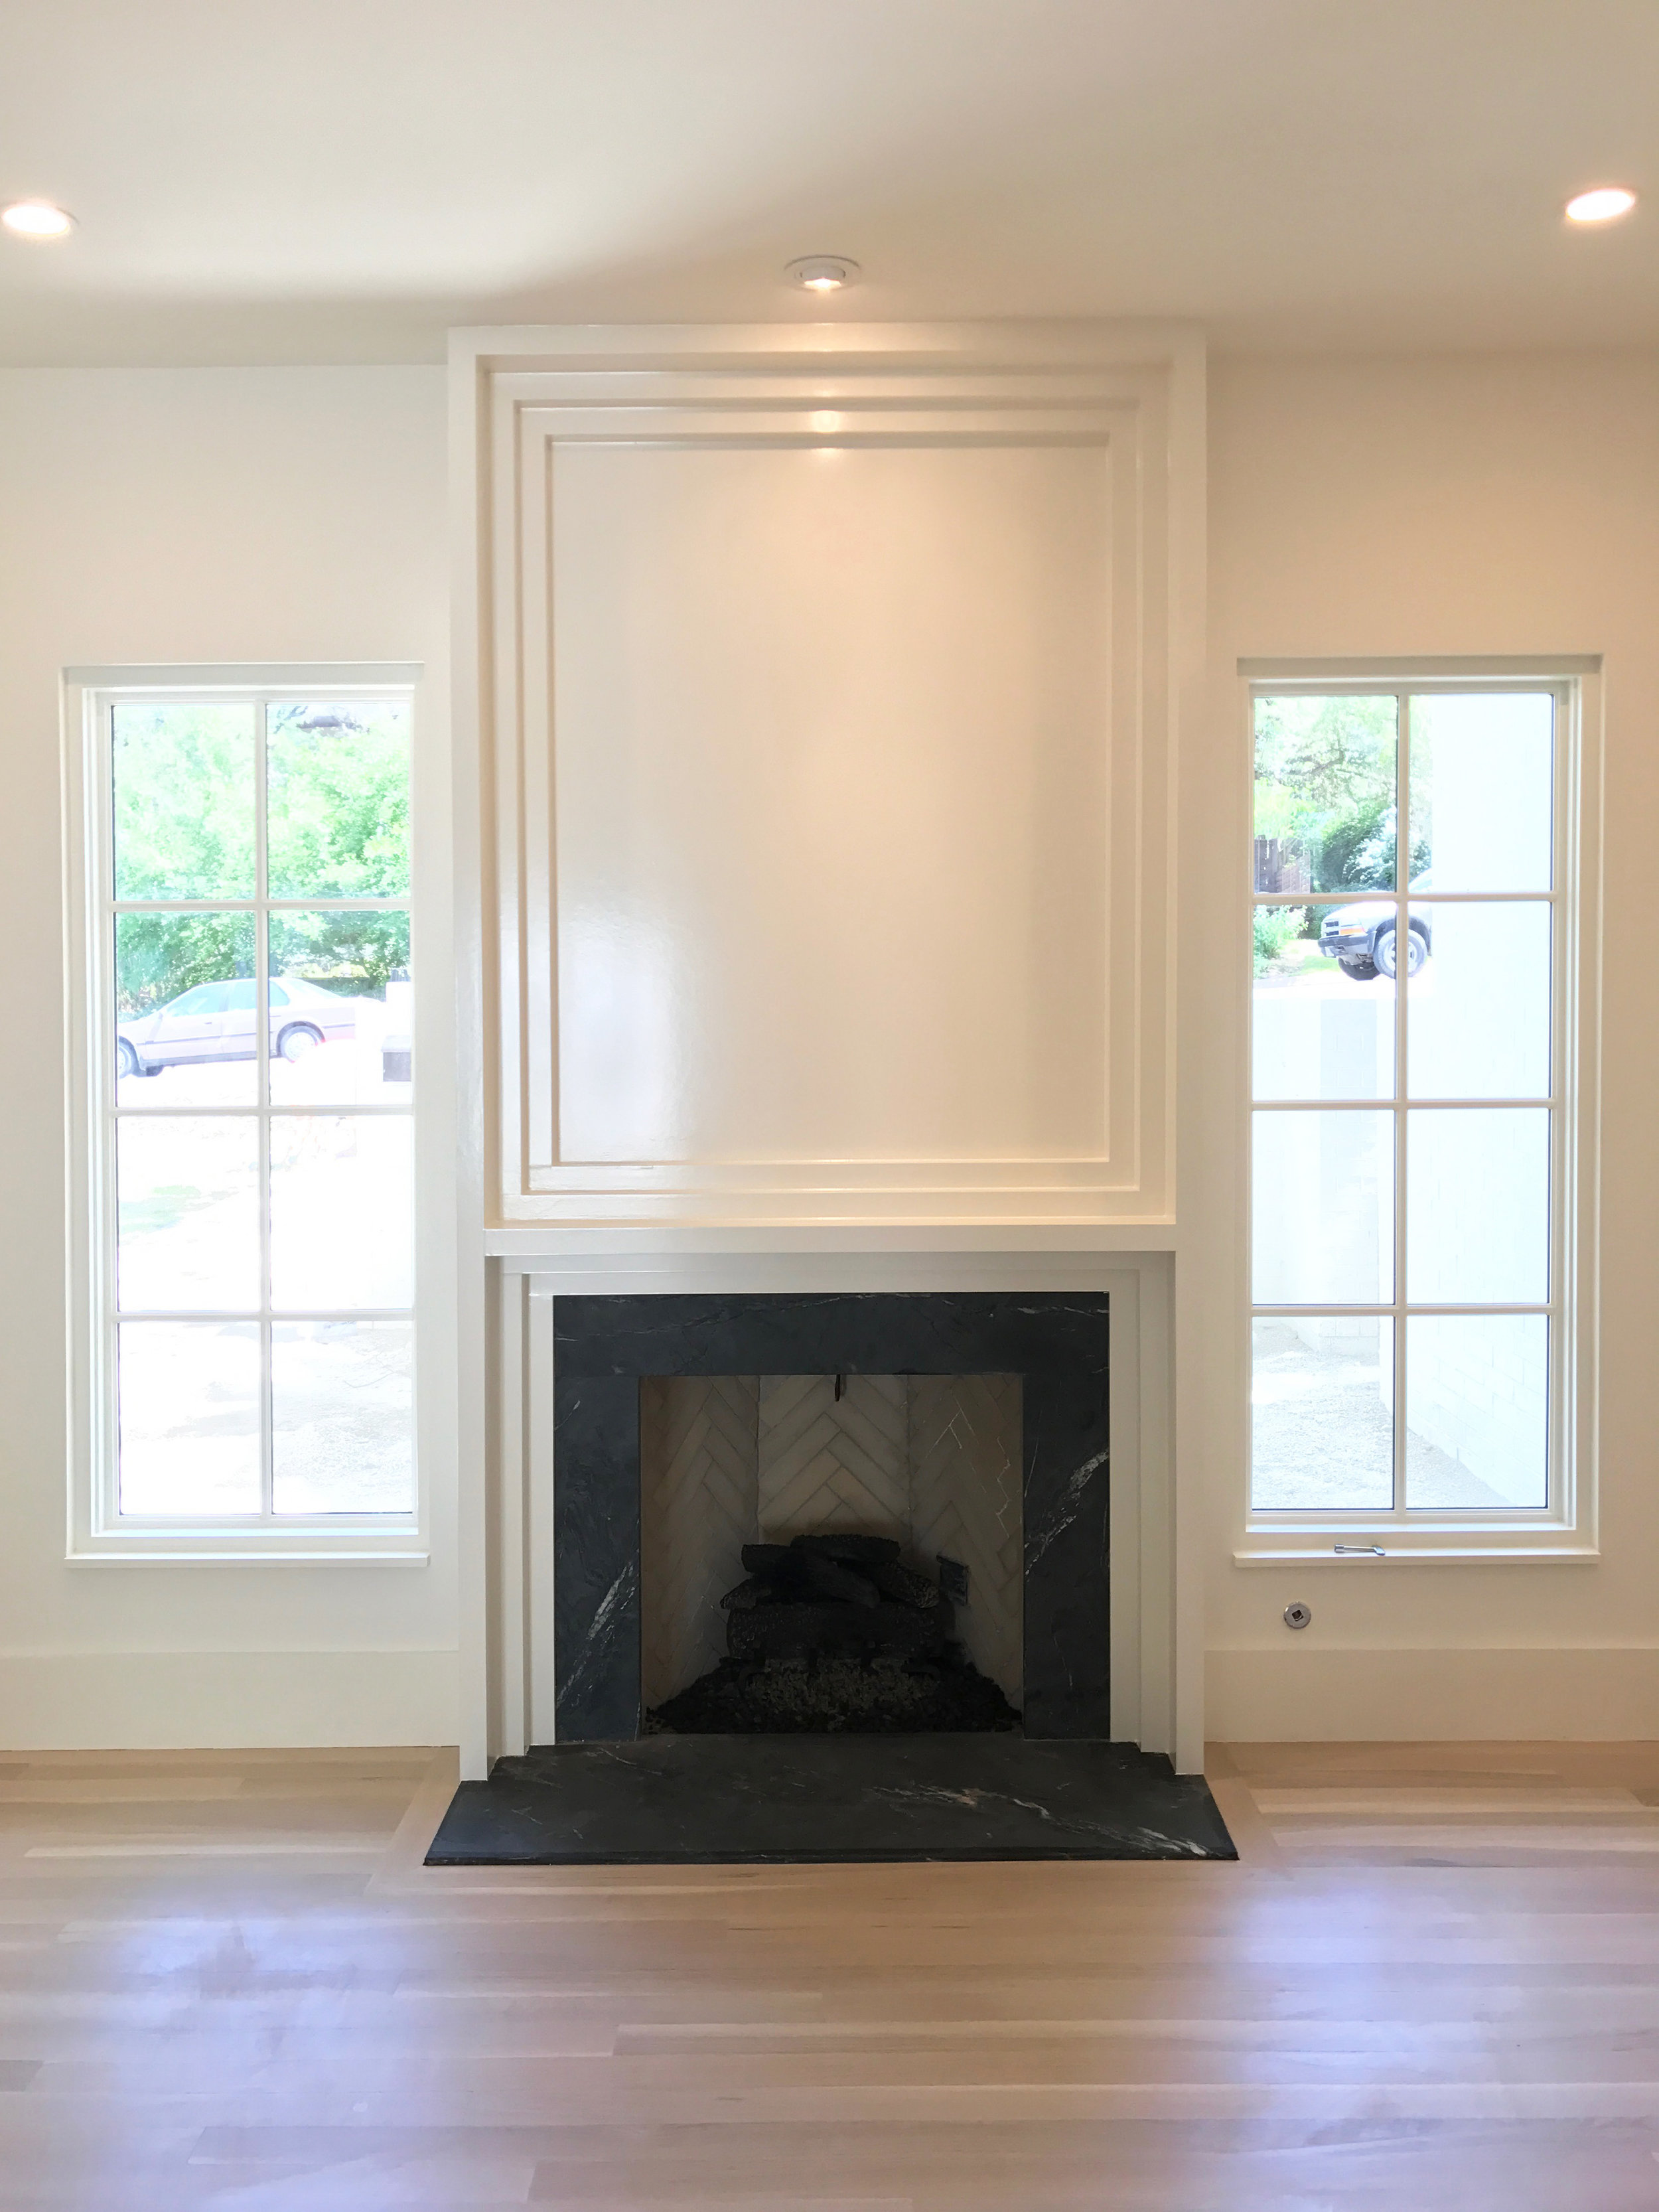 Elizabeth-Baird-Architecture-Southill Circle-fireplace.jpg